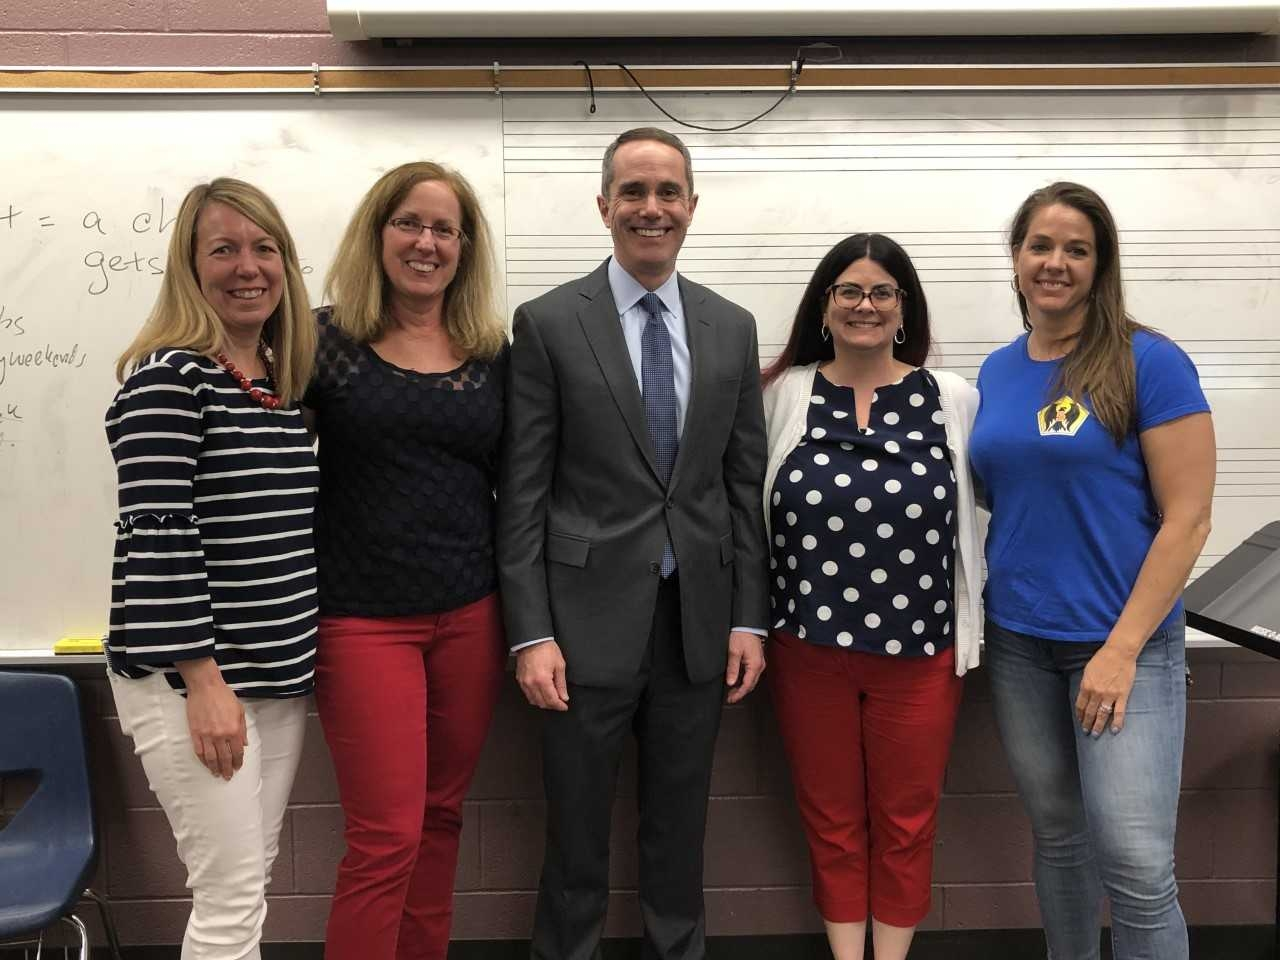 May 2019: Senator Santarsiero visits teachers and 4th grade students at Eleanor Roosevelt Elementary School as part of their Spirit Week celebration.